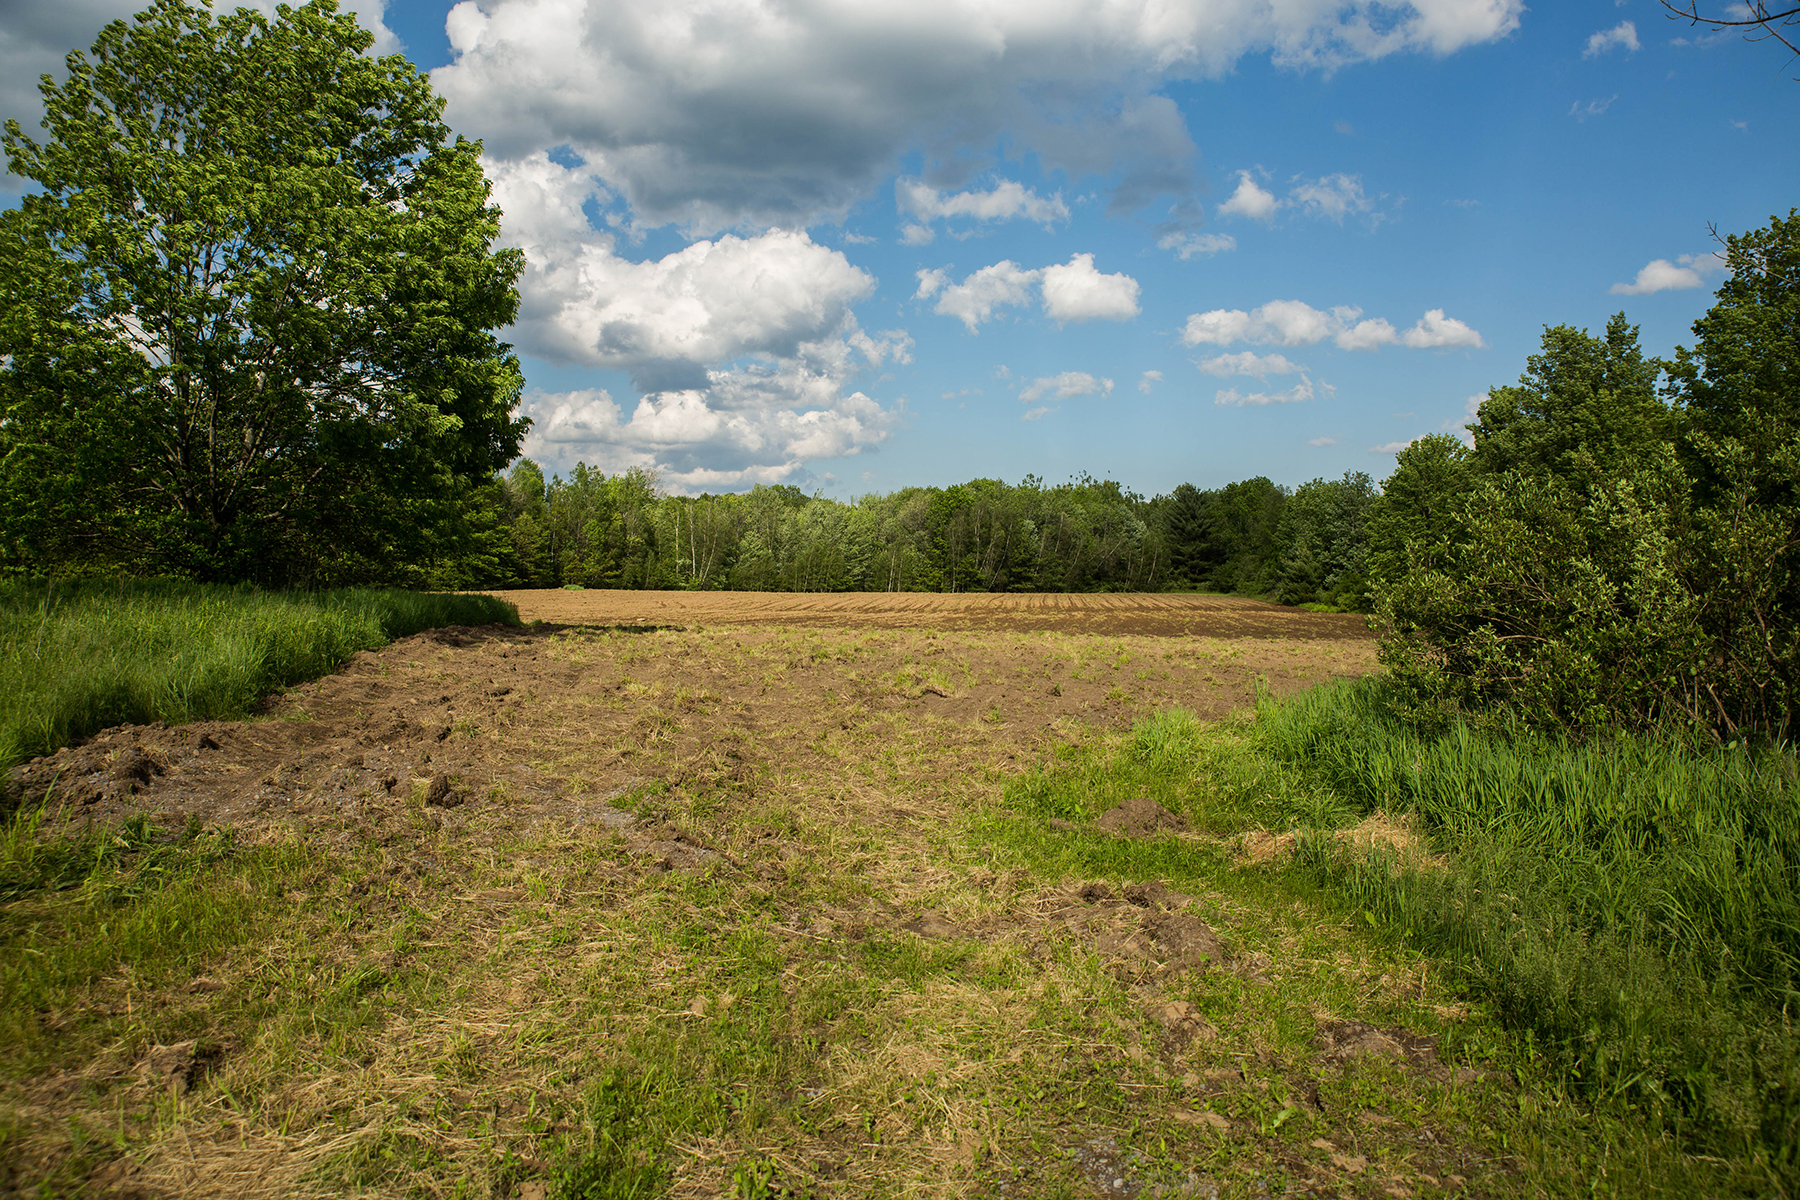 Terrain pour l Vente à Pre-Approved 10 Lot Subdivision 570 Rt 29 Milton, New York 12020 États-Unis